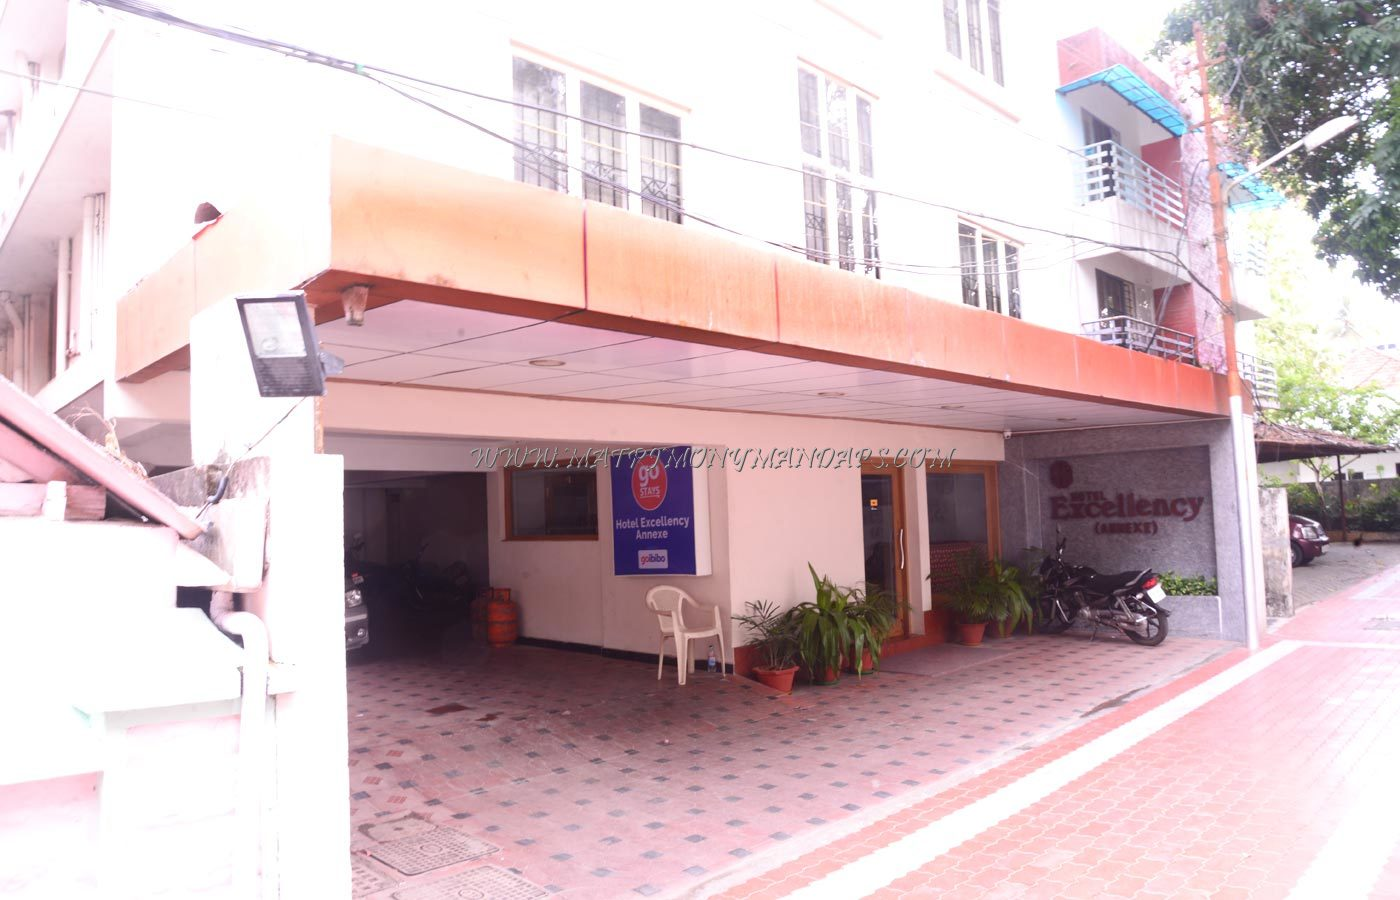 Find More Banquet Halls in MG Road